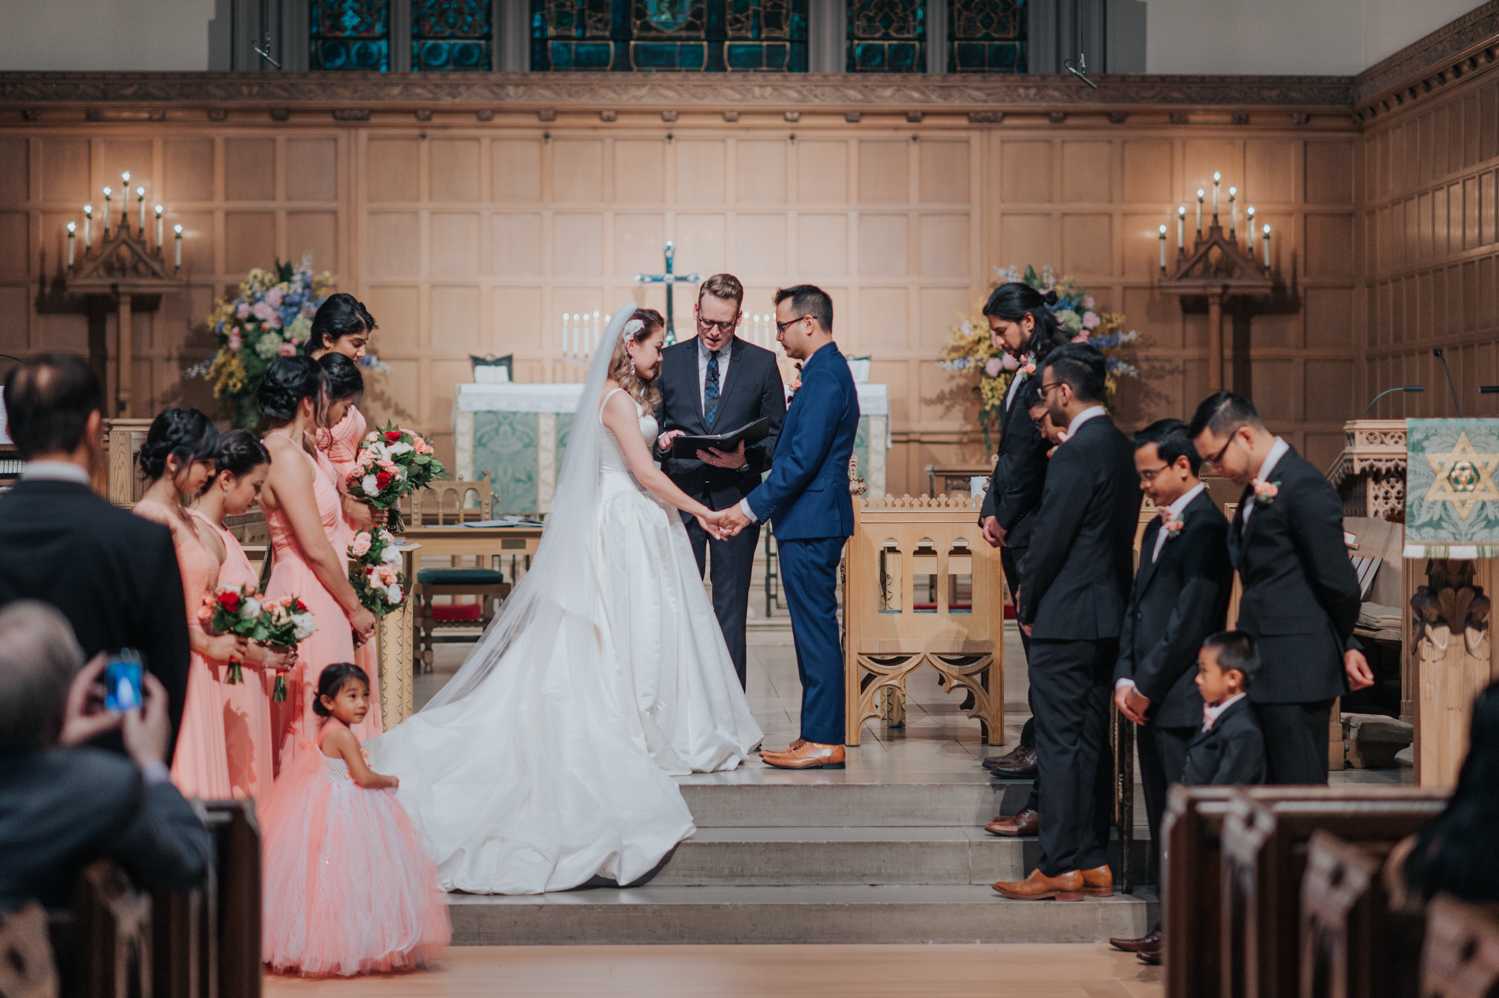 Wedding ceremony at the Timothy Eaton Memorial Church in Toronto